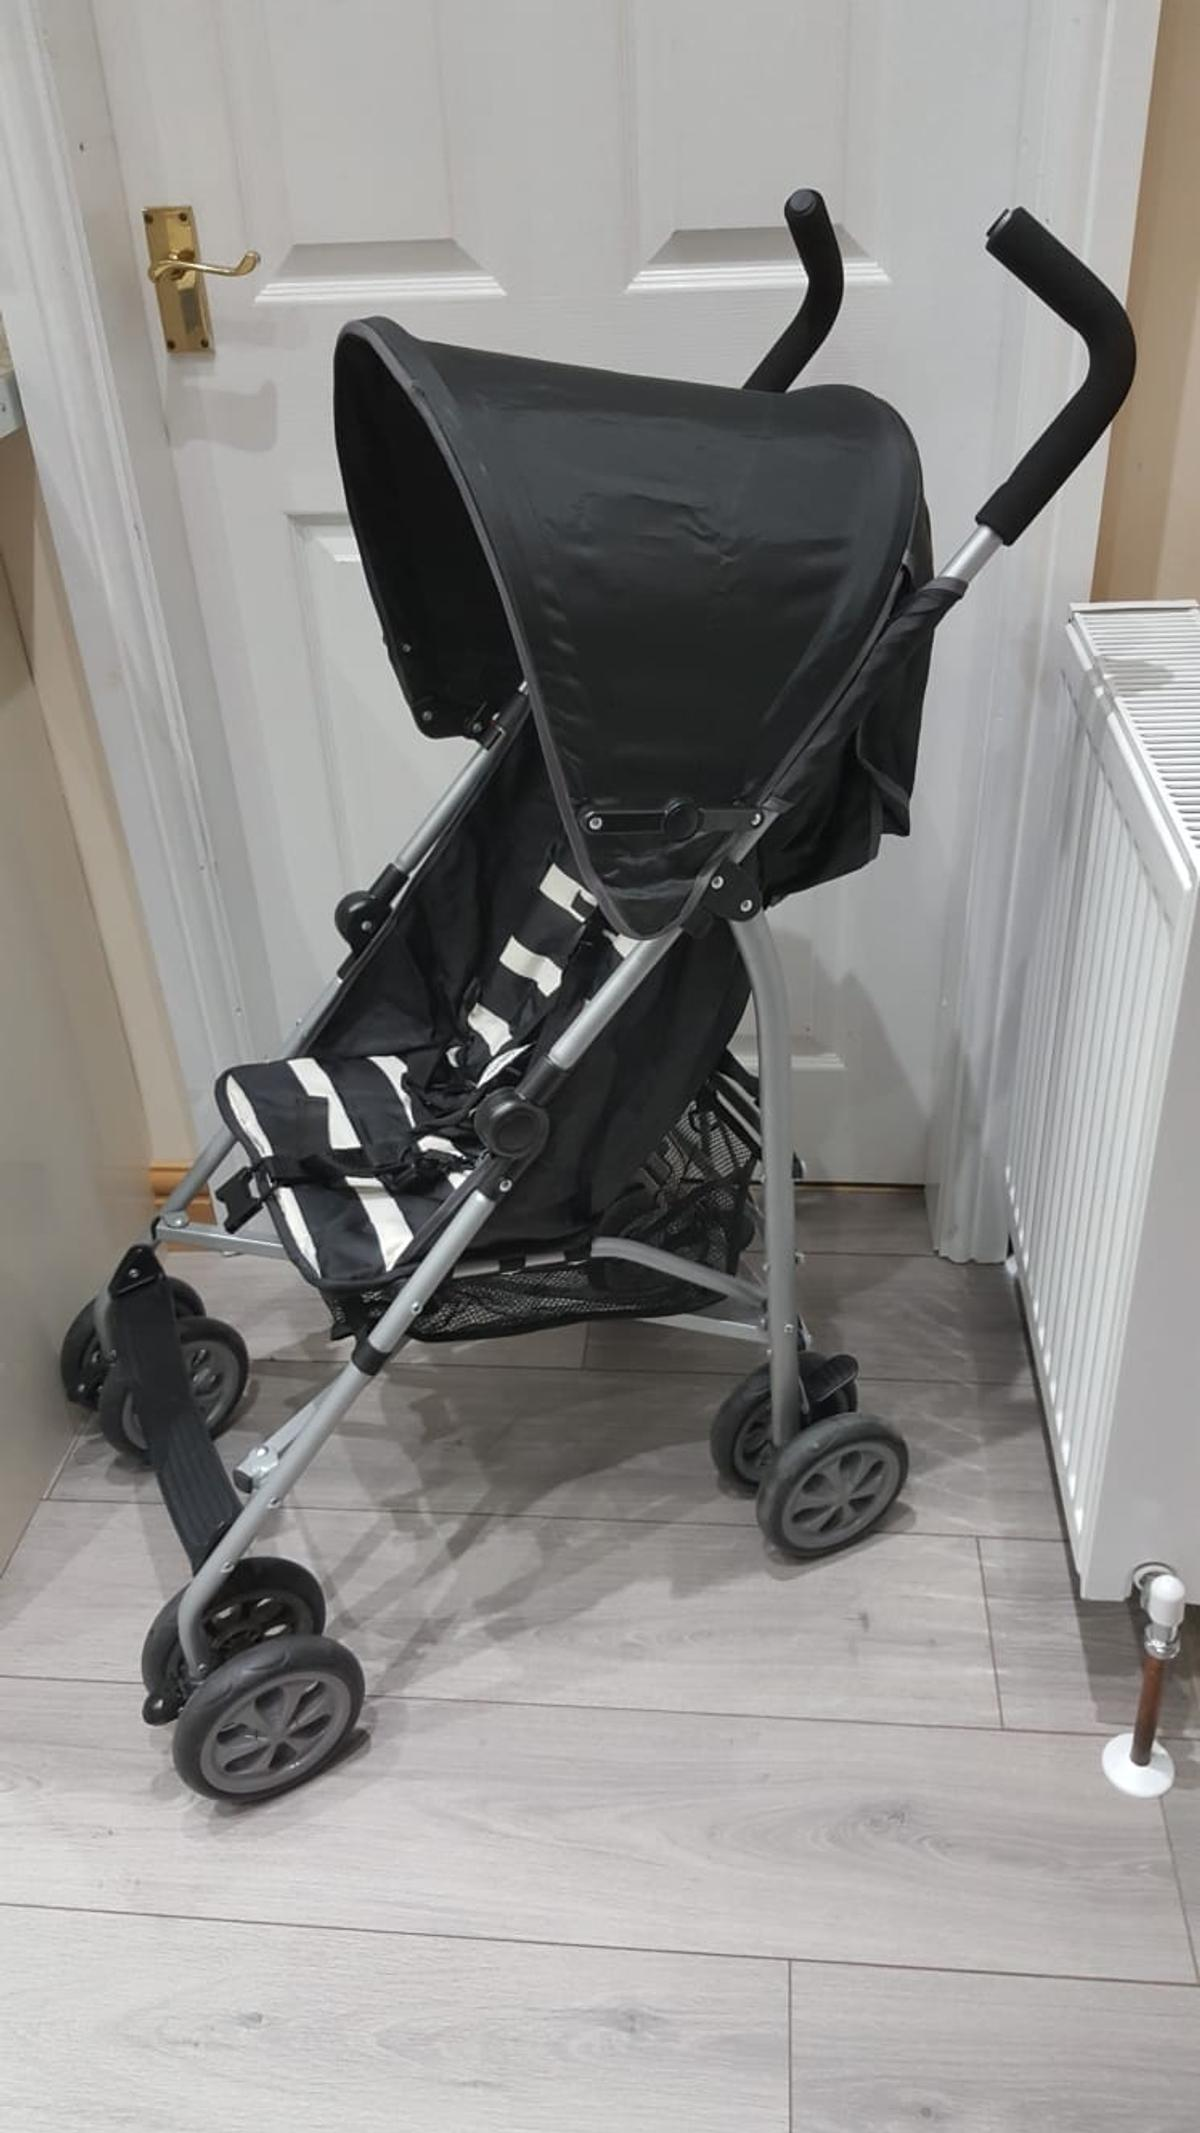 3 Wheel Prams Argos Pram Pushchair Kids